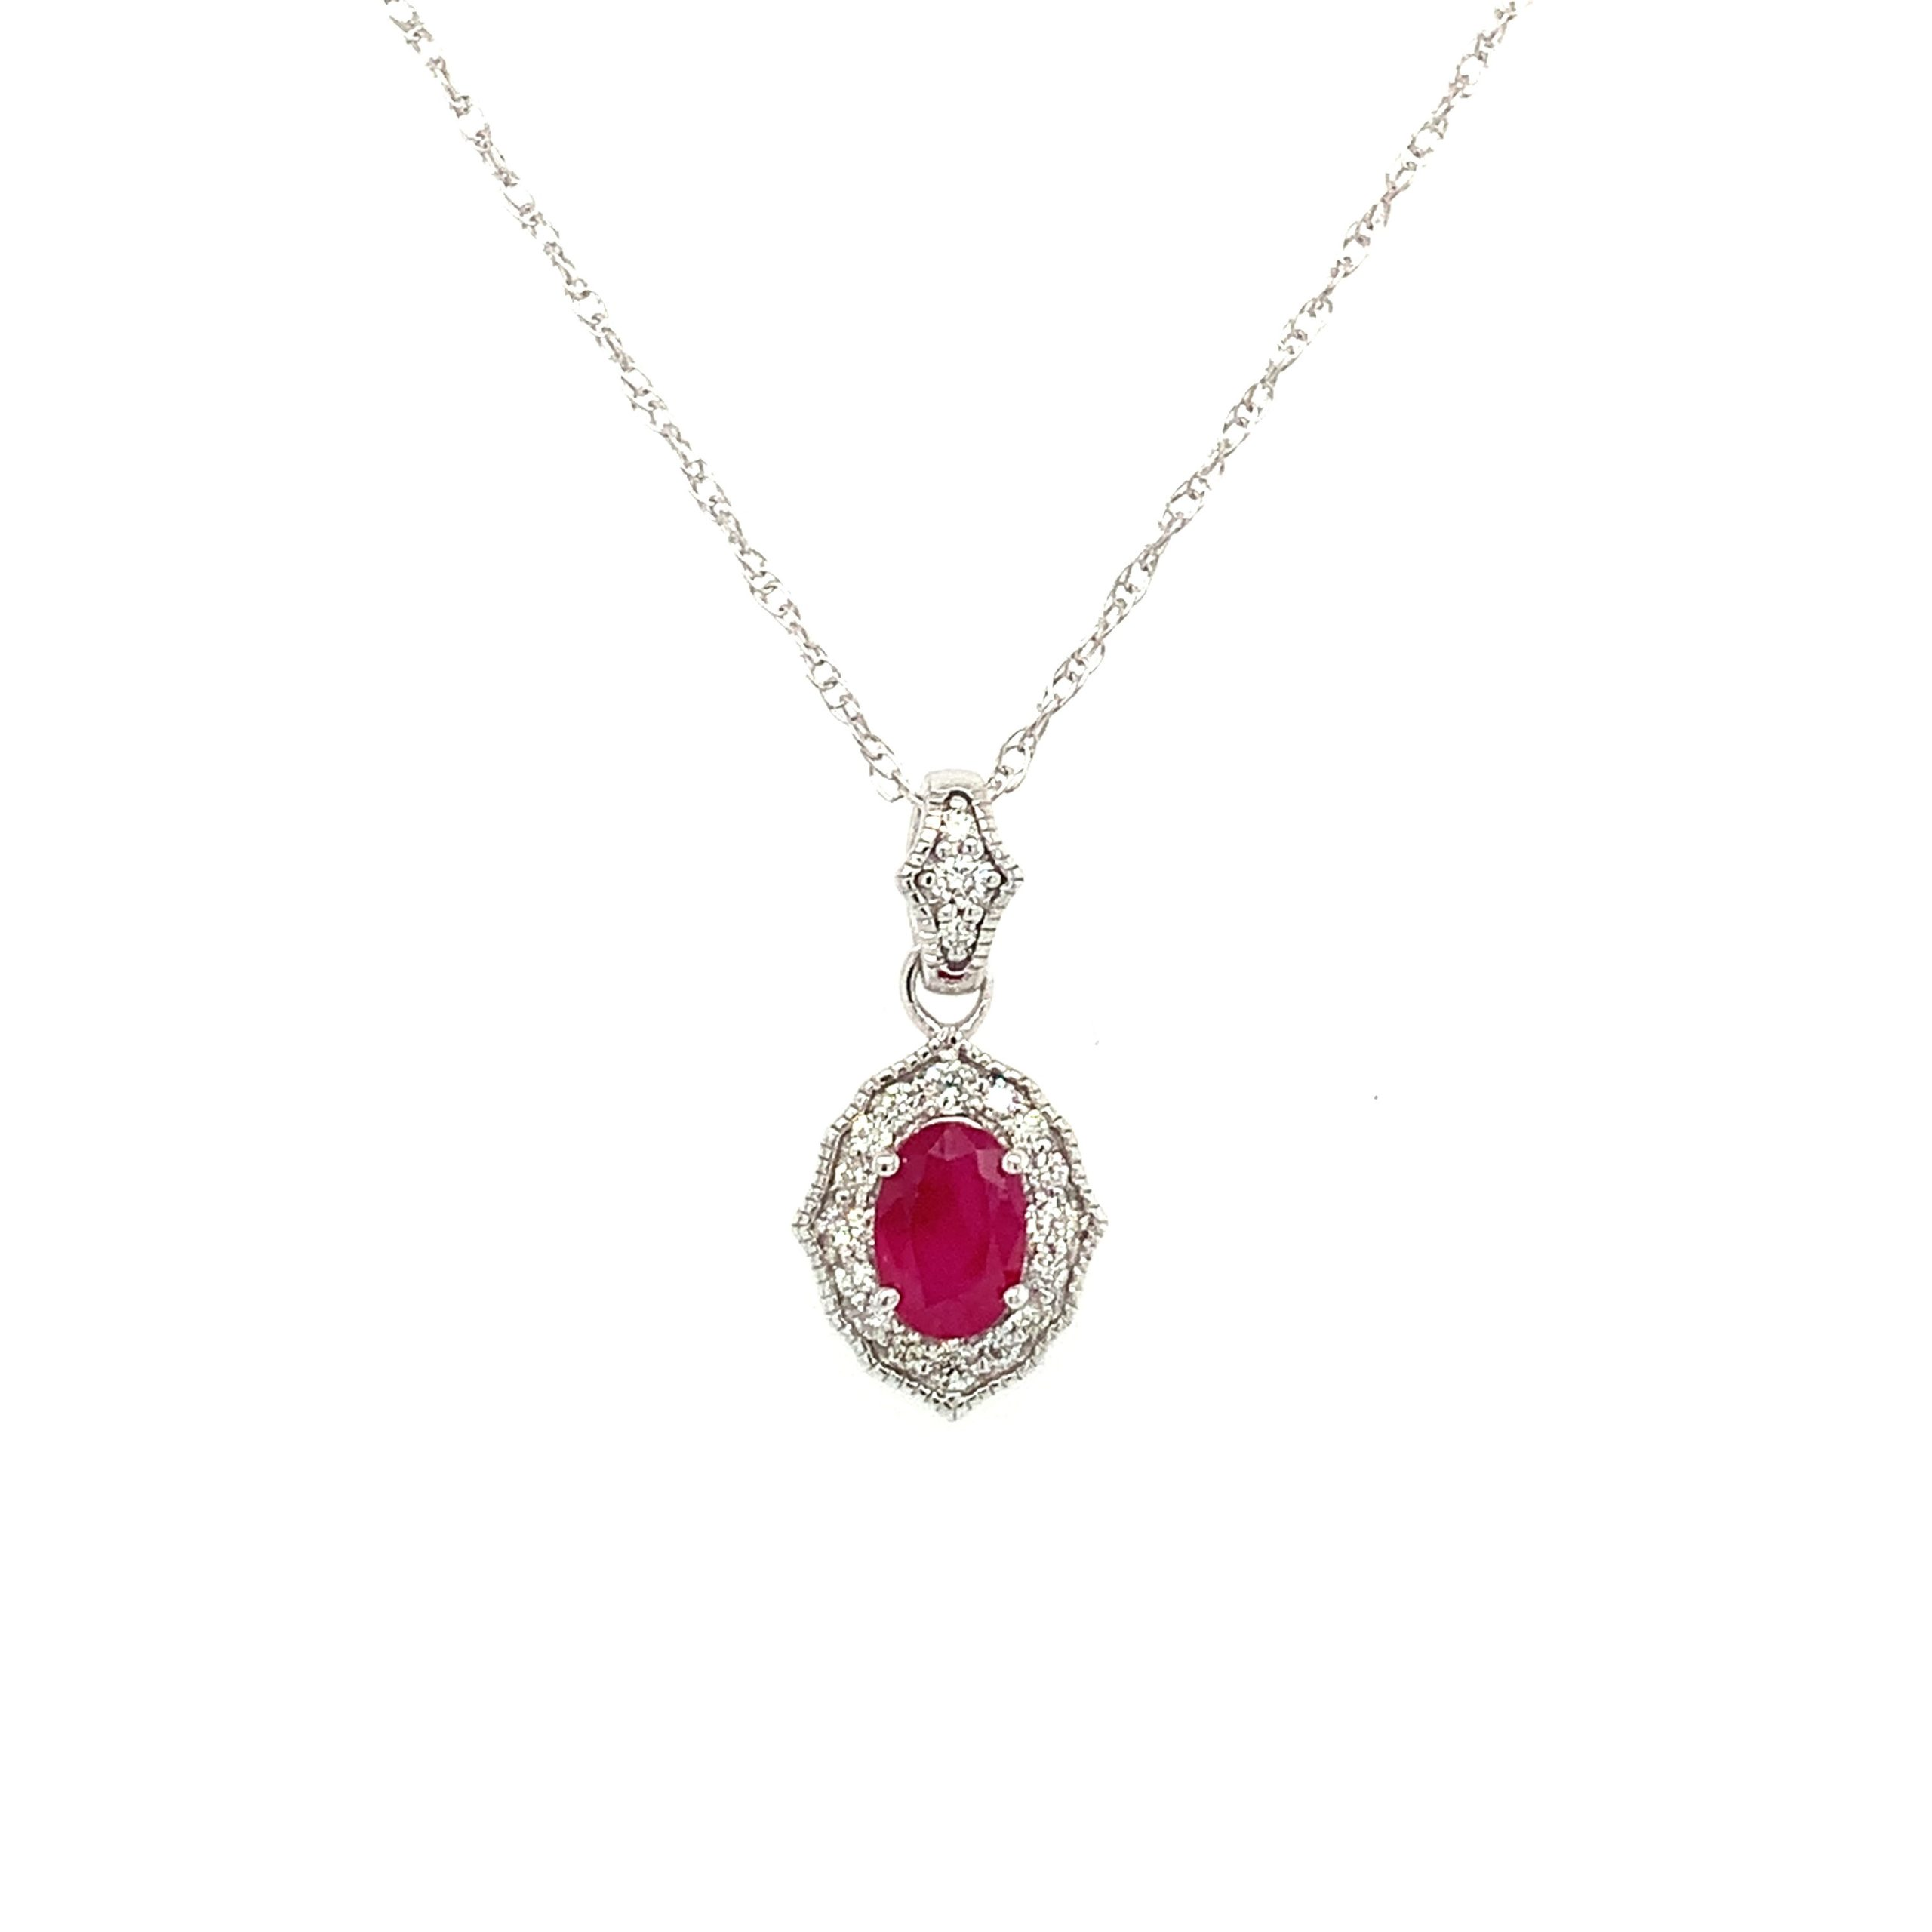 White Gold Ruby Pendant Necklace